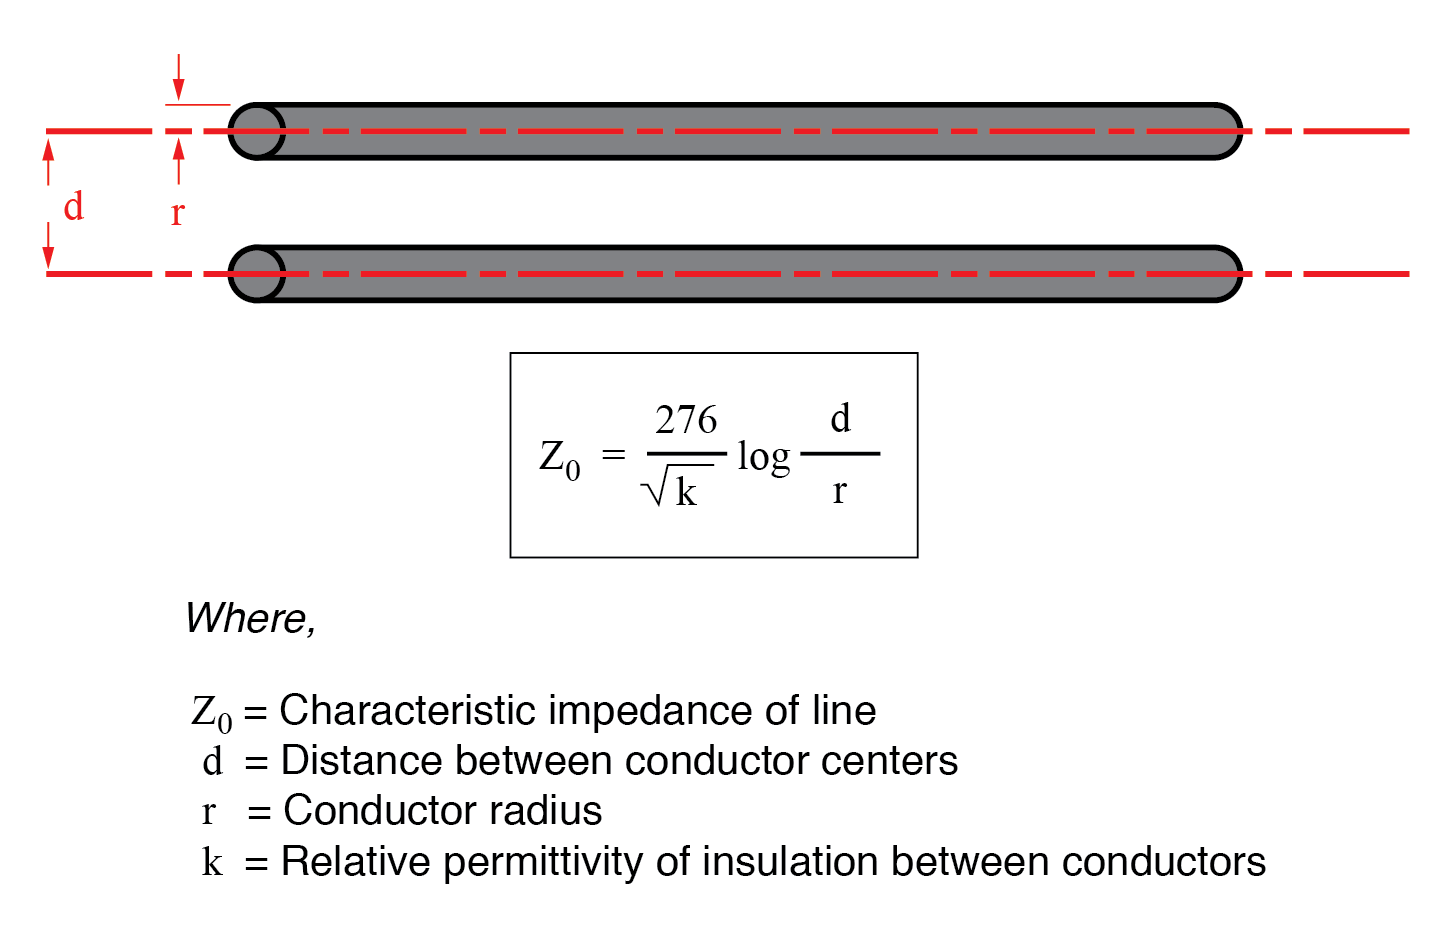 hight resolution of characteristic impedance may be calculated as such